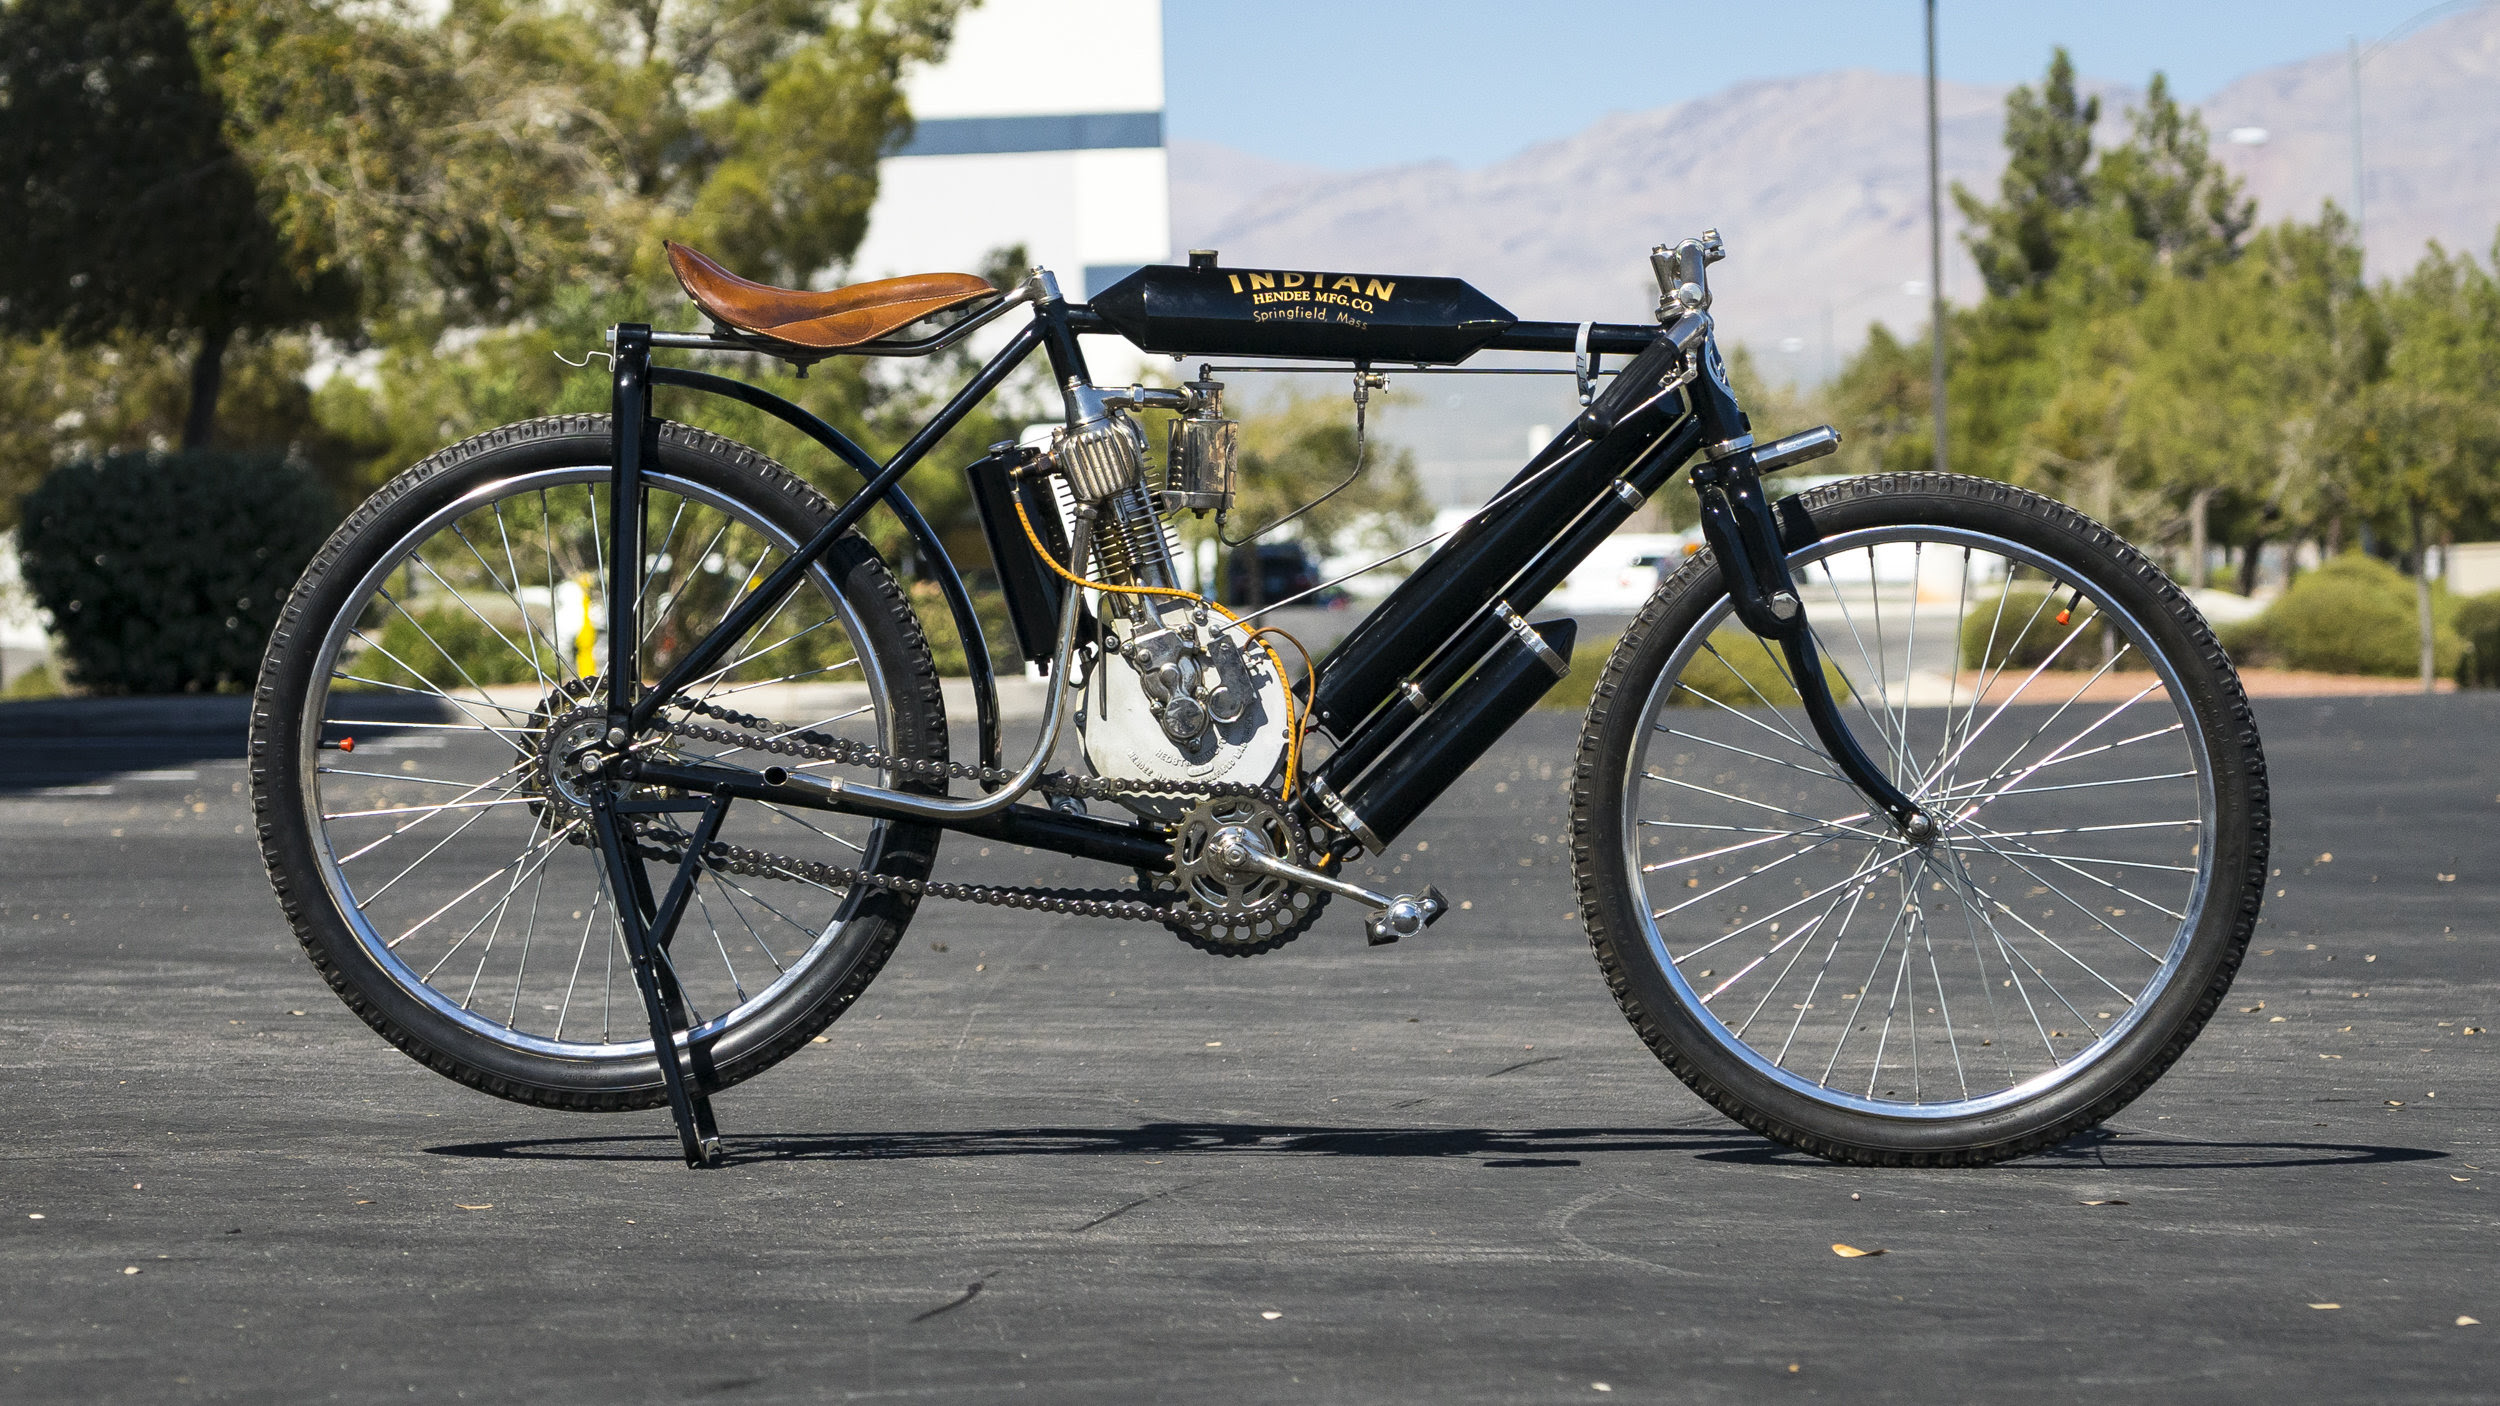 World's Largest Antique Motorcycle Auction Company Returns to South Point Hotel, Casino & Spa